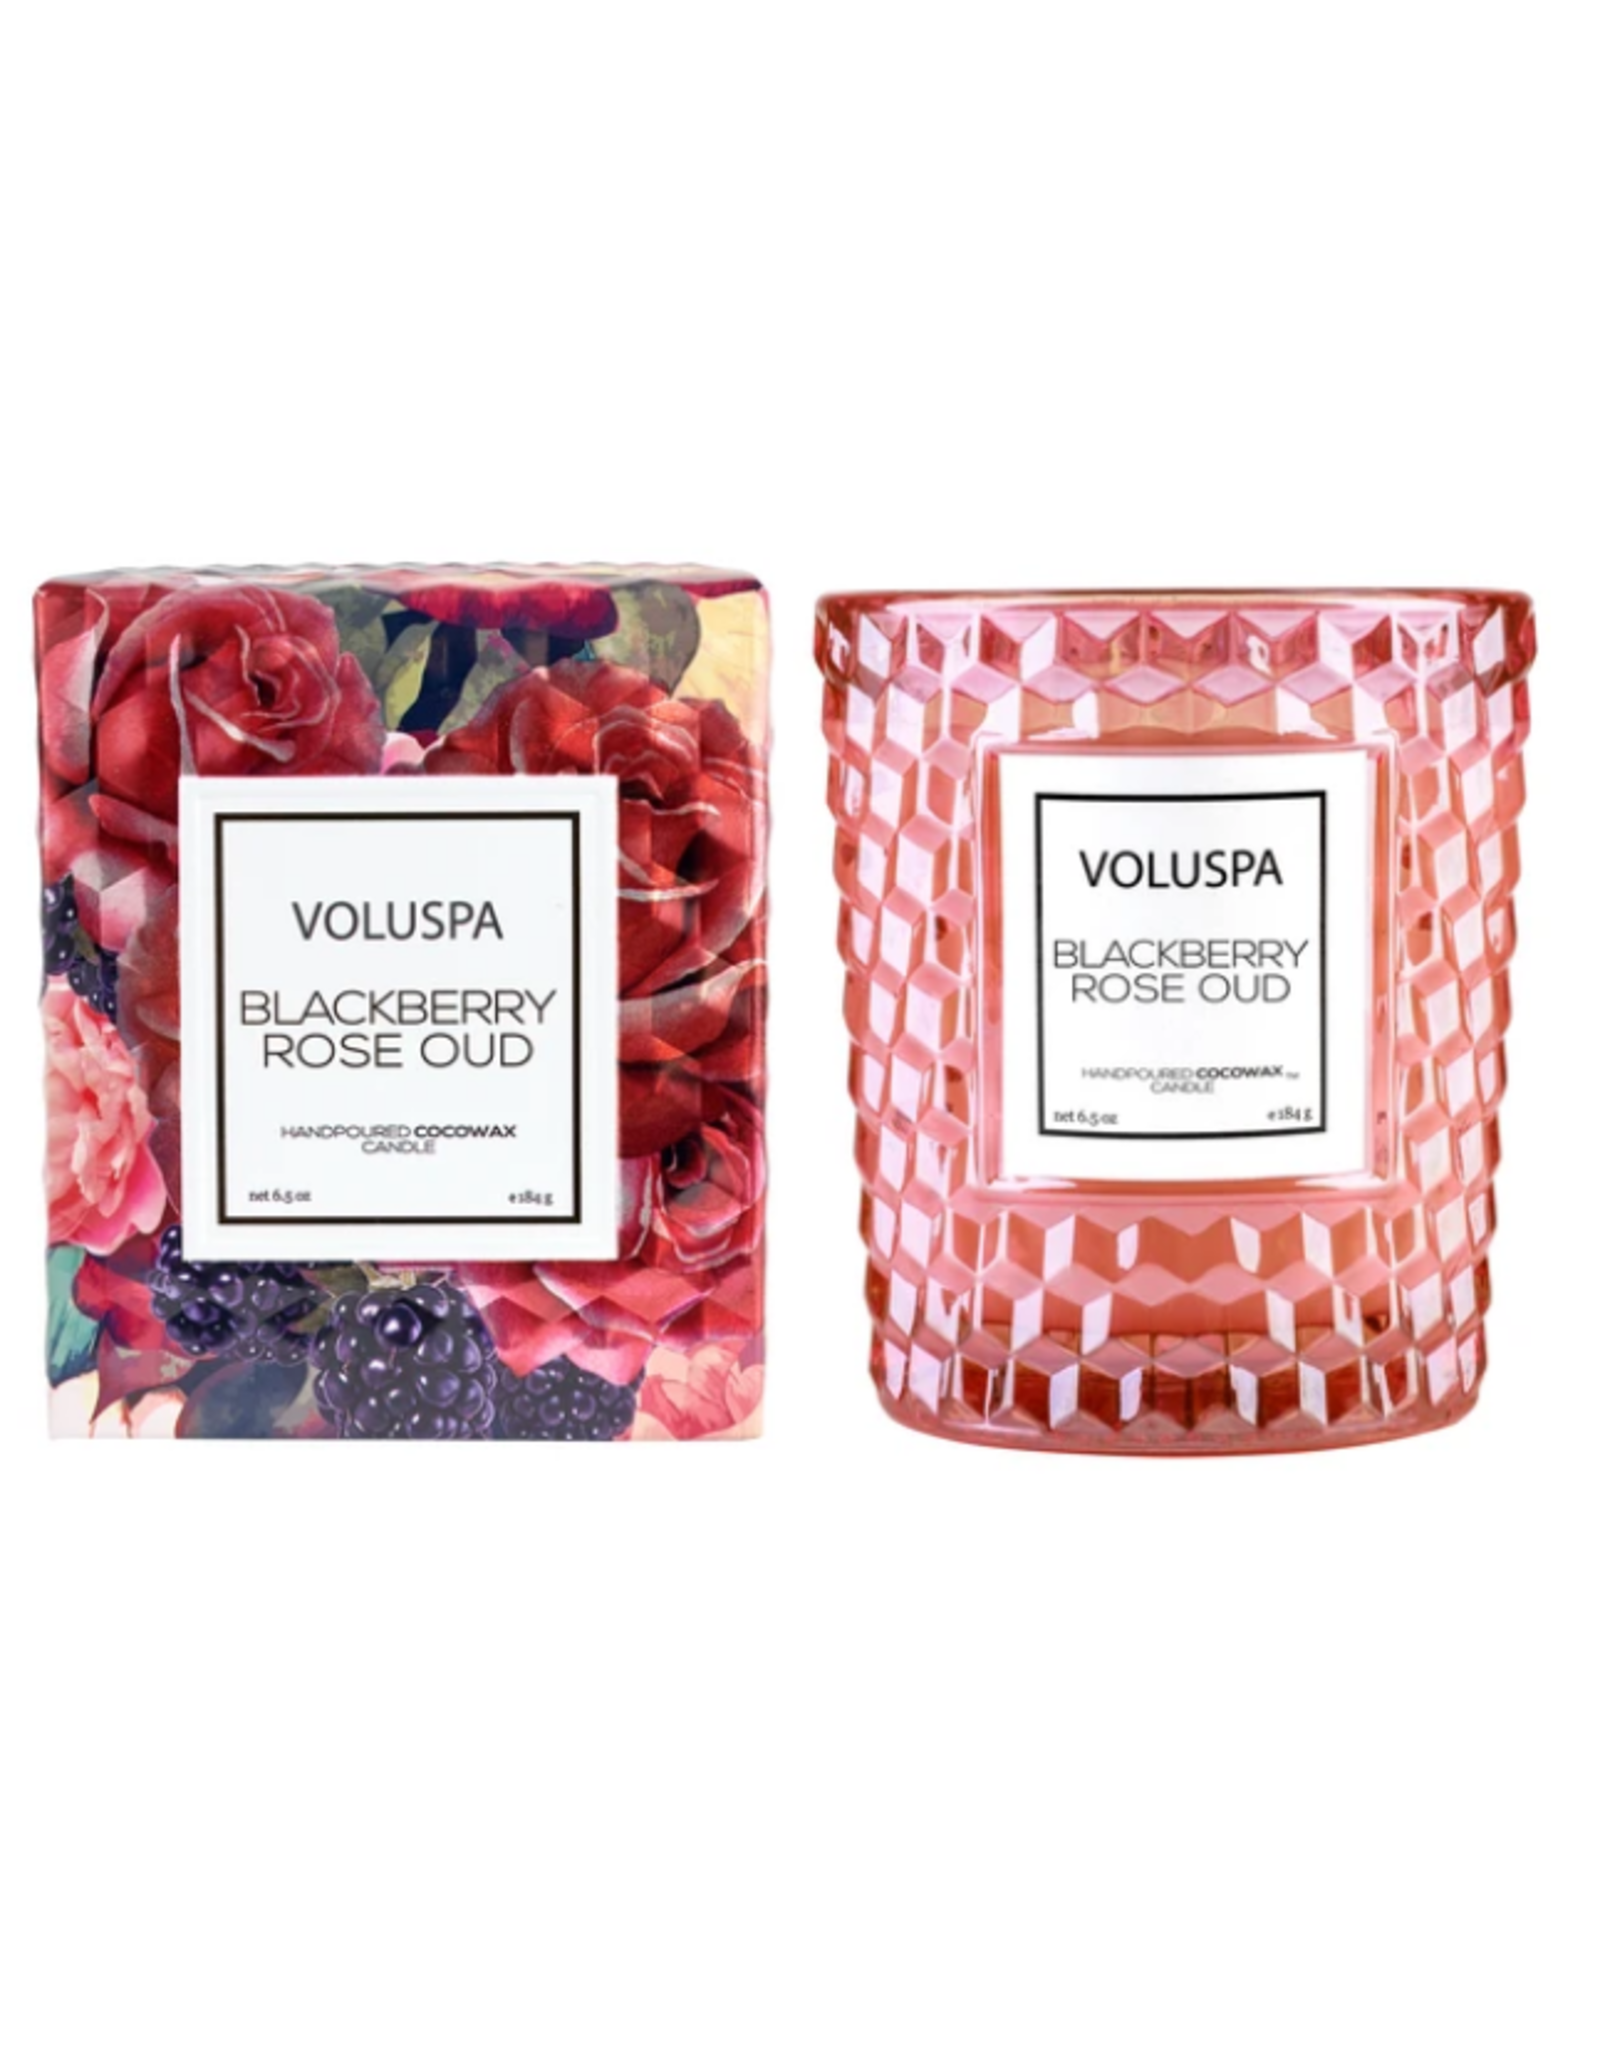 Voluspa Blackberry Rose Oud Classic Candle in Textured Glass